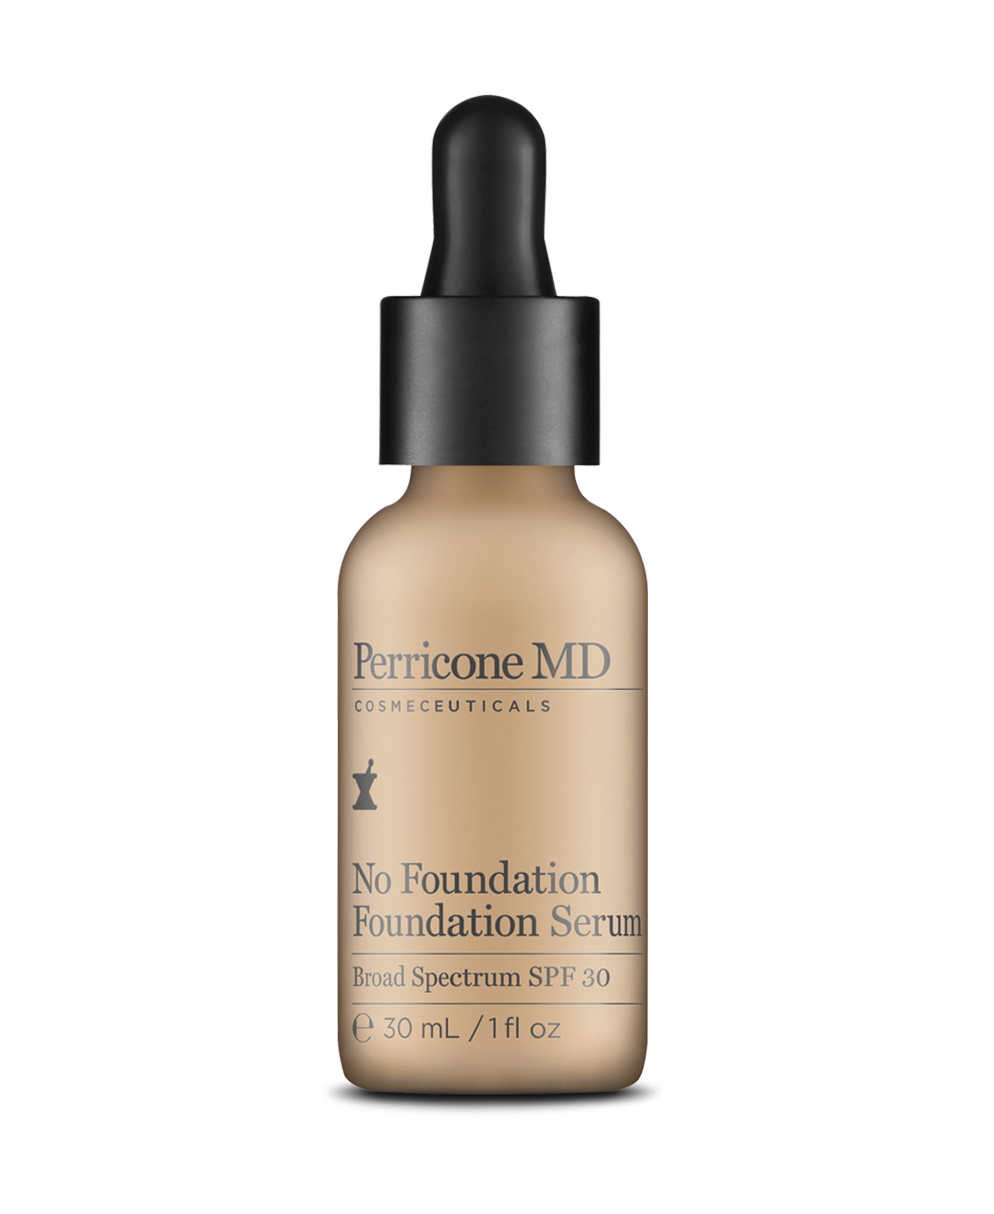 No Foundation Foundation Serum